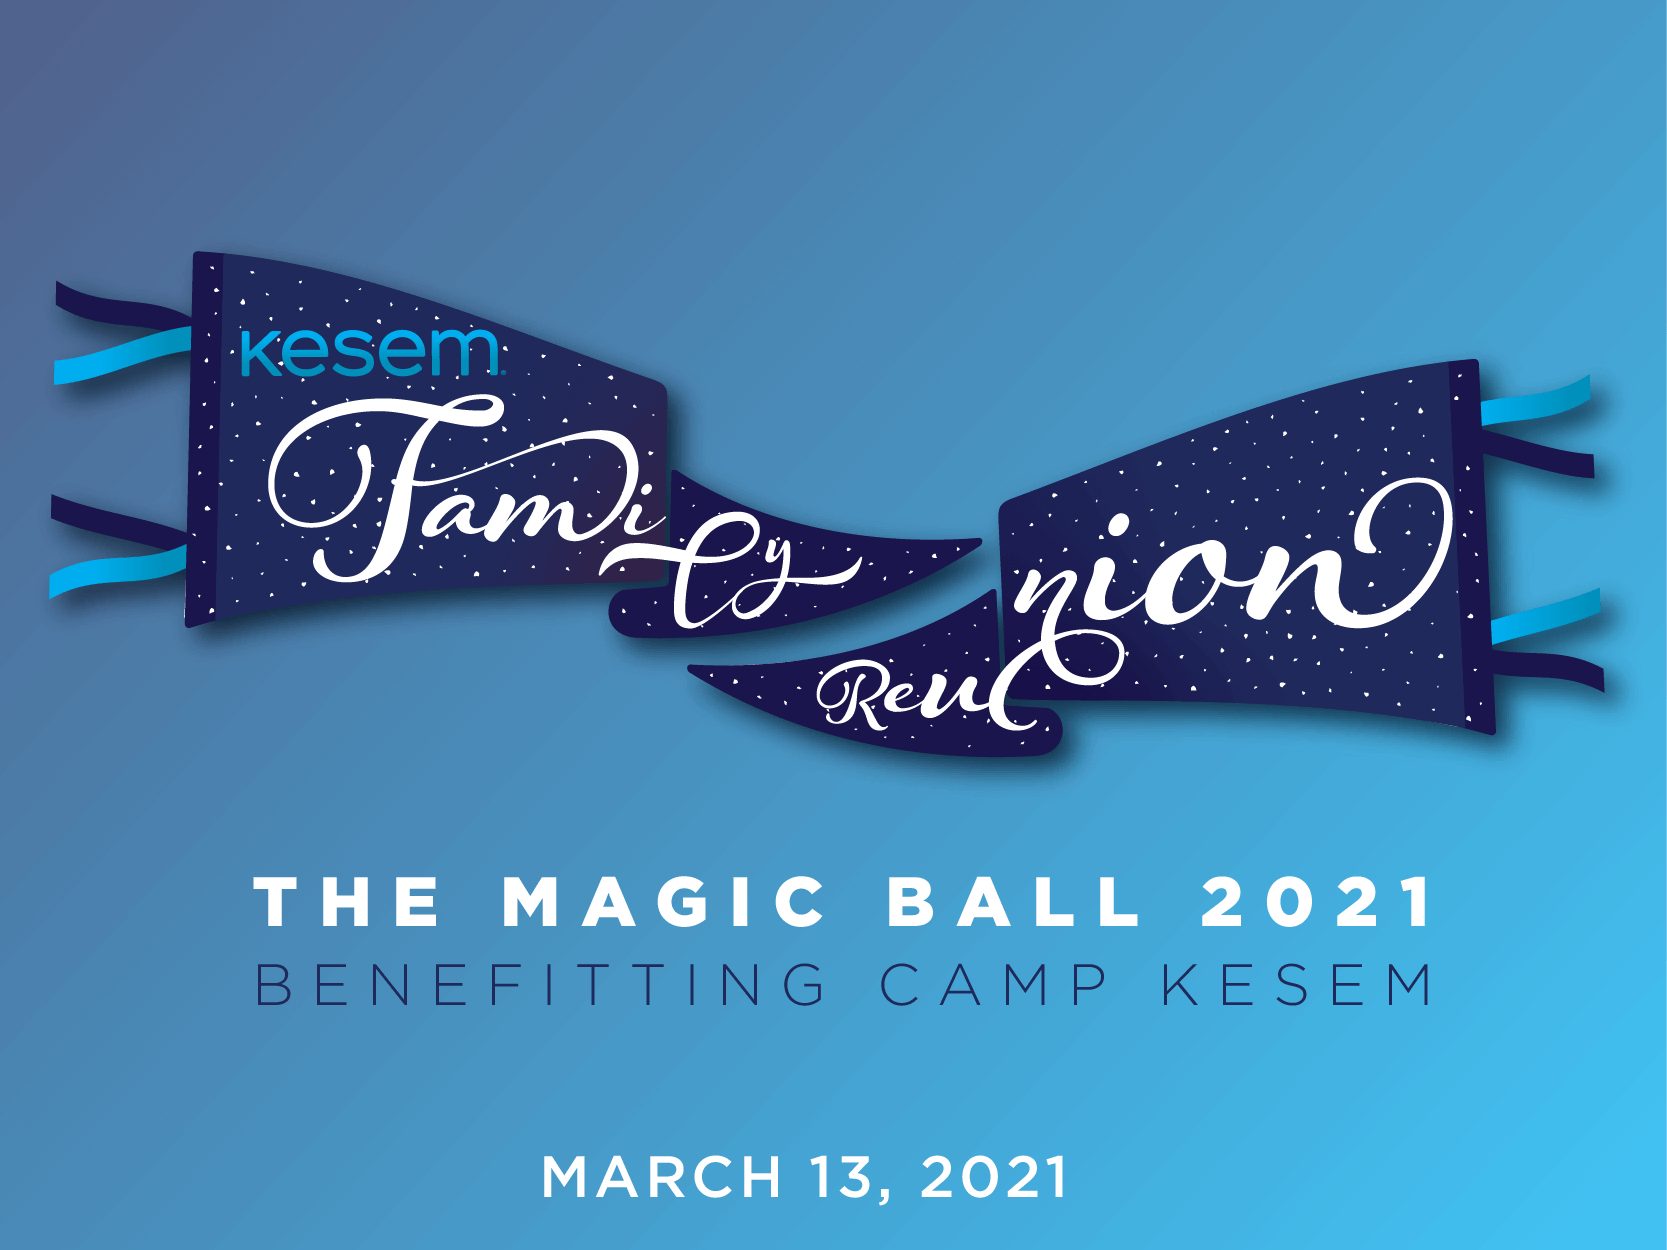 The Magic Ball 2021